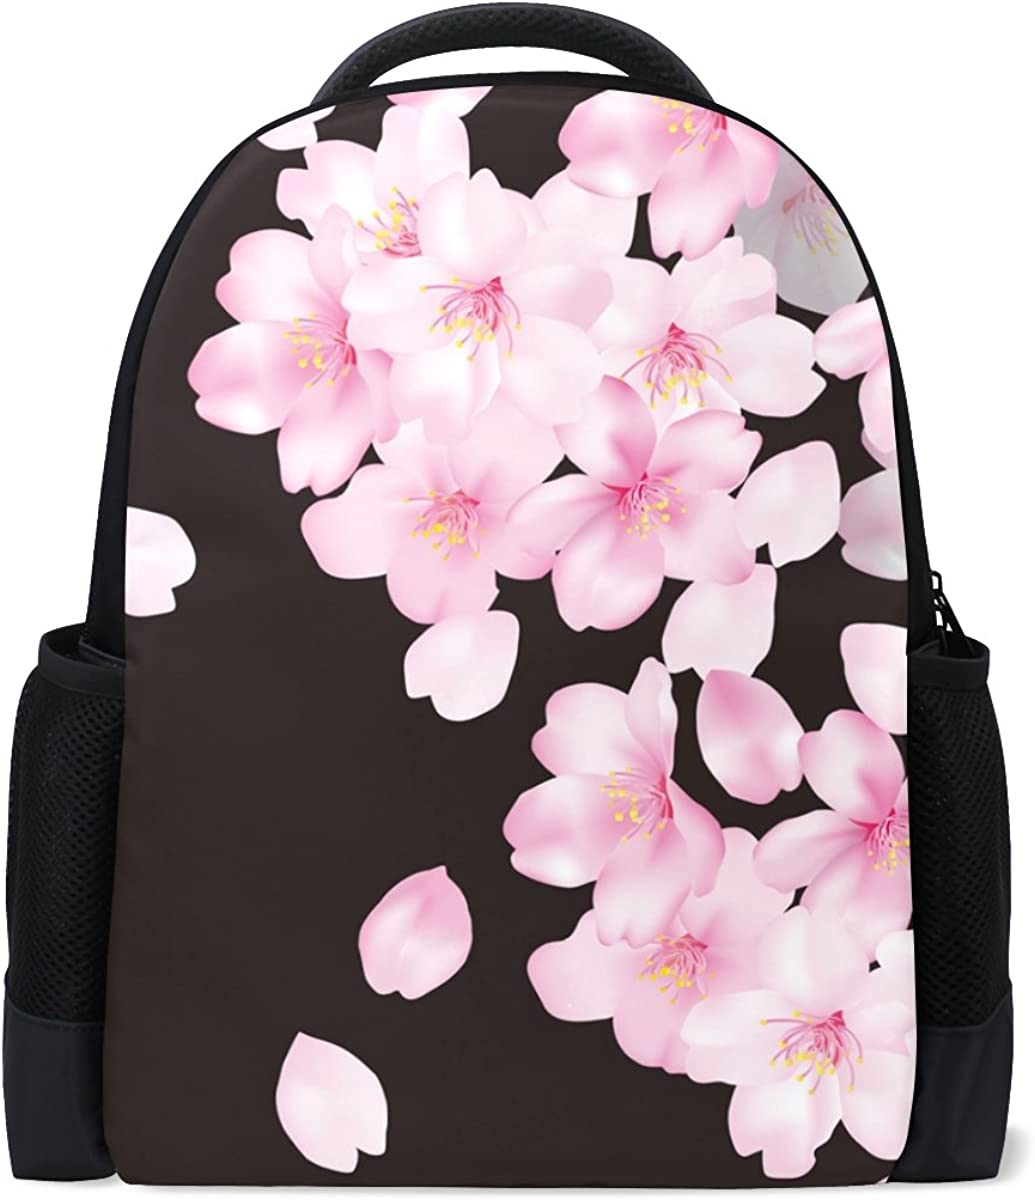 FAJRO Beautiful Flowers Black and White Chevron Travel Backpack Carry On School Pack